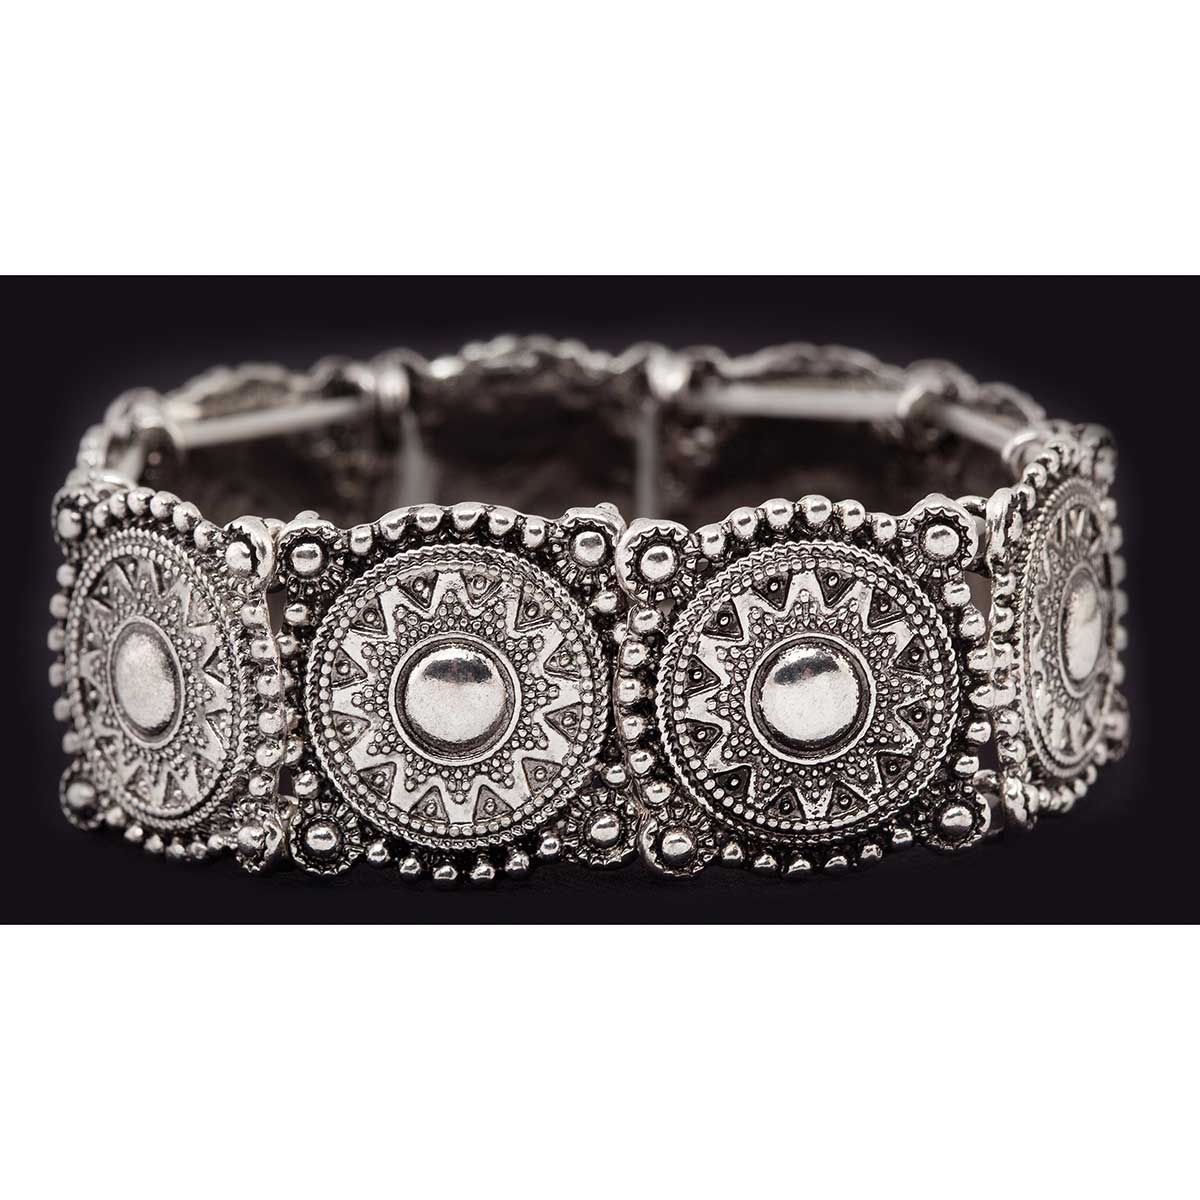 Antique Silver Circle Stretch Bracelet